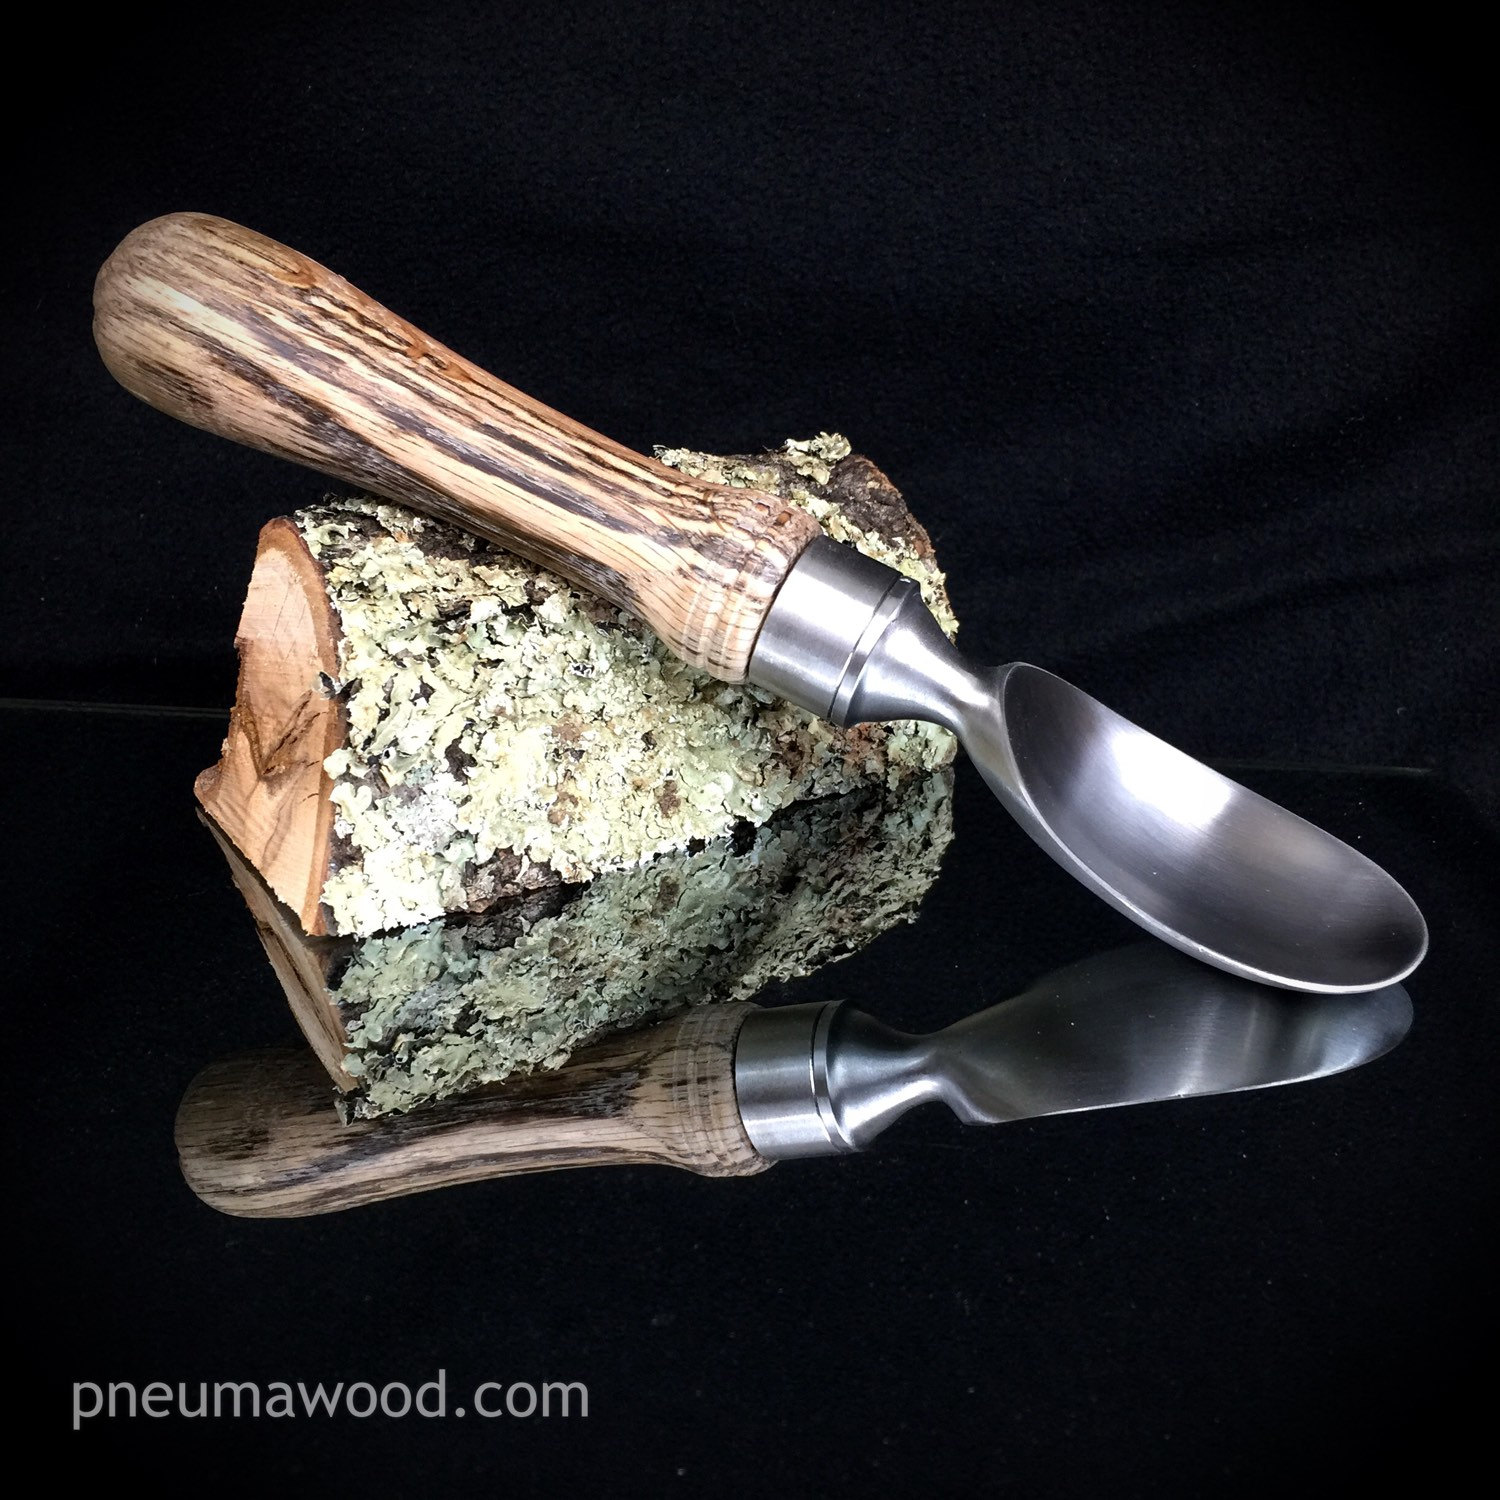 pneumawood-ice-cream-scoop.jpg